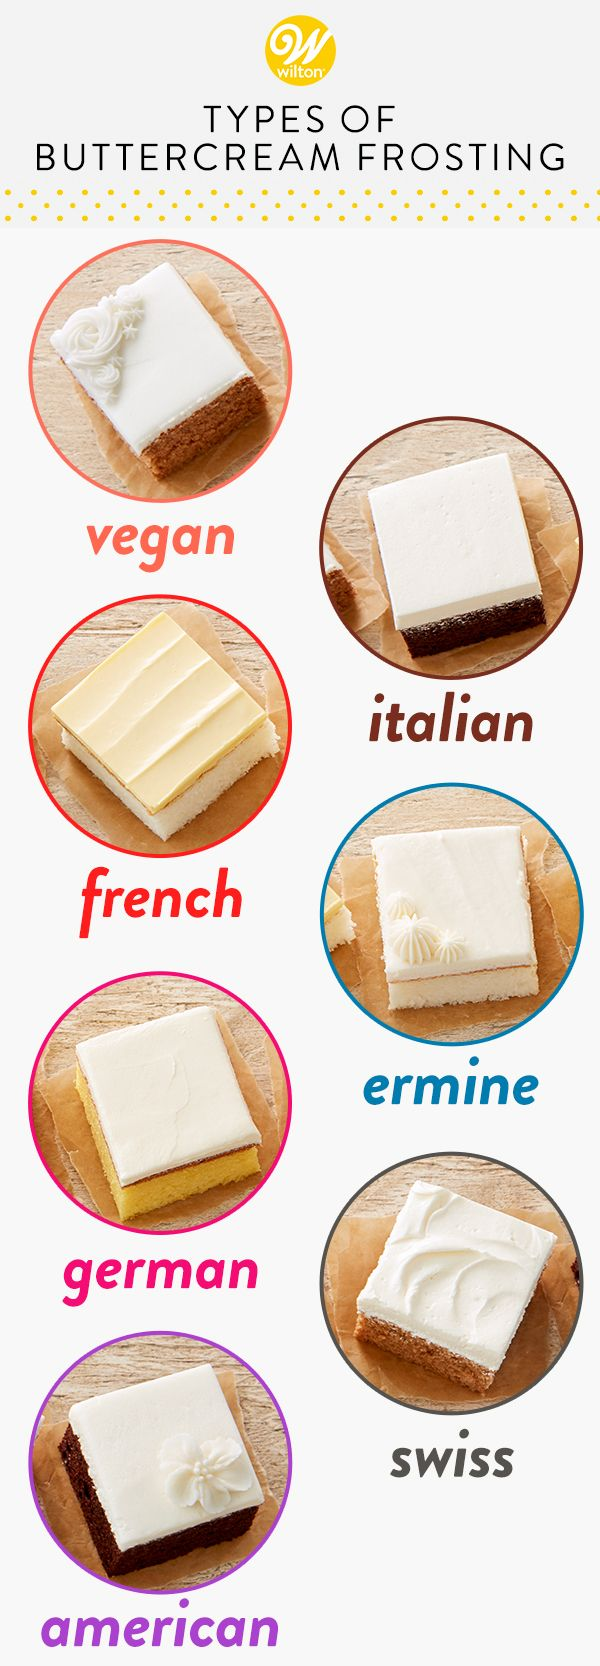 The 7 Types of Buttercream Frosting | Wilton Blog